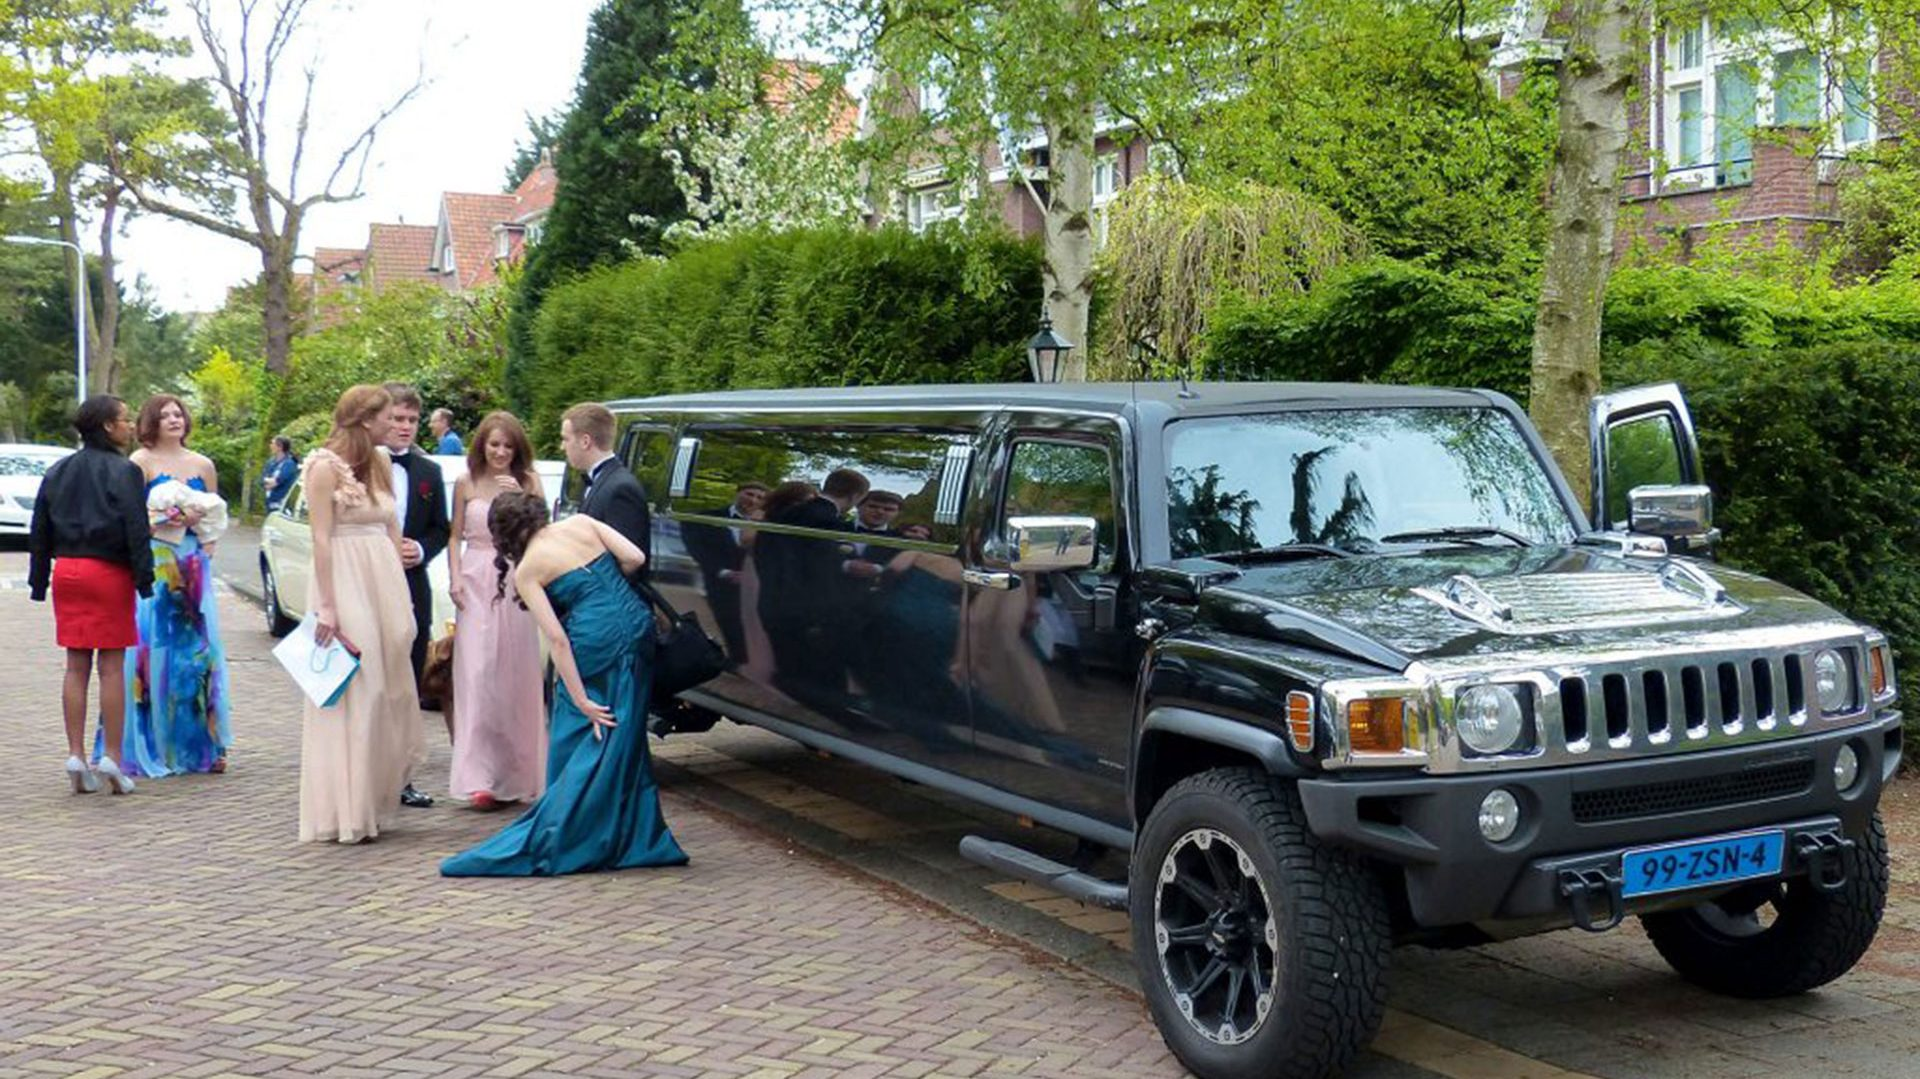 prom limo - black hummer limo - prom night - limo on demand for prom